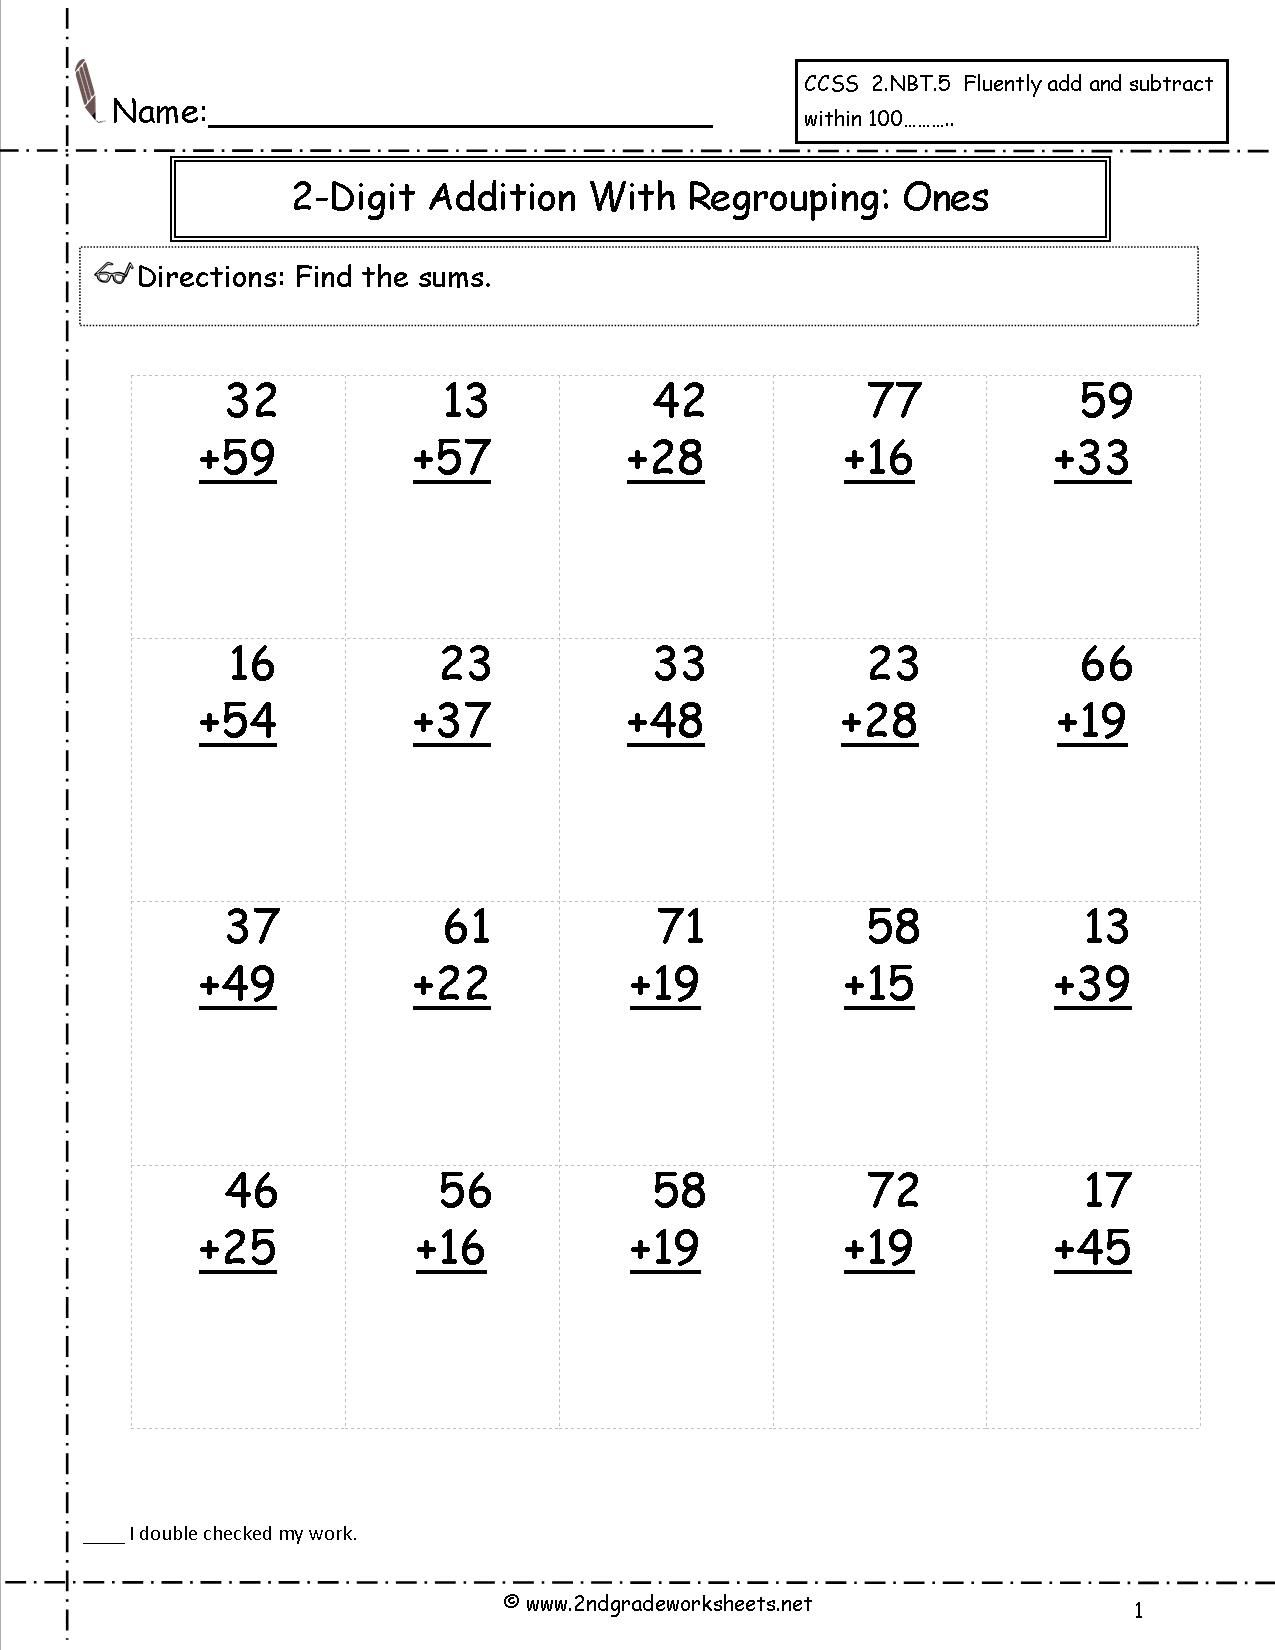 Worksheets 3 Digit Addition With Regrouping Worksheets two digit addition with regrouping ones to tens place worksheet worksheet